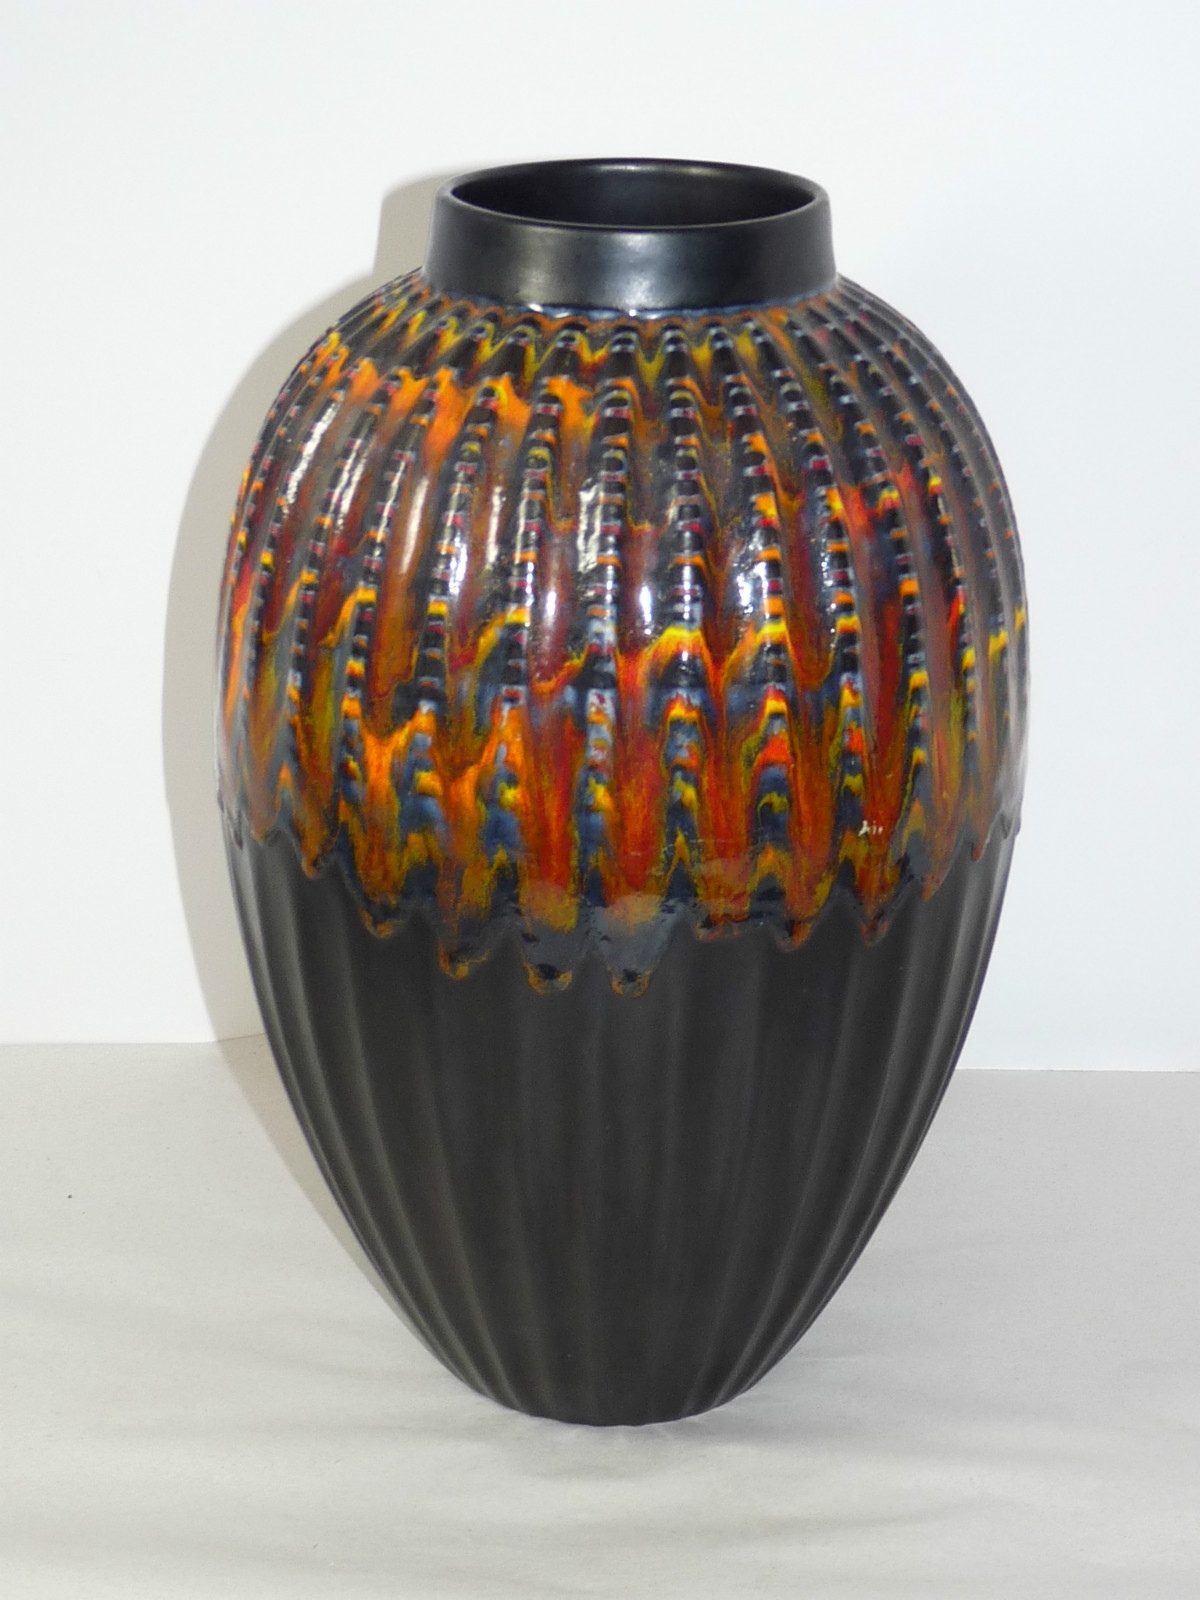 Sunny knoll antiques royal haeger peacock red lava black fluted 11 12 vase reviewsmspy